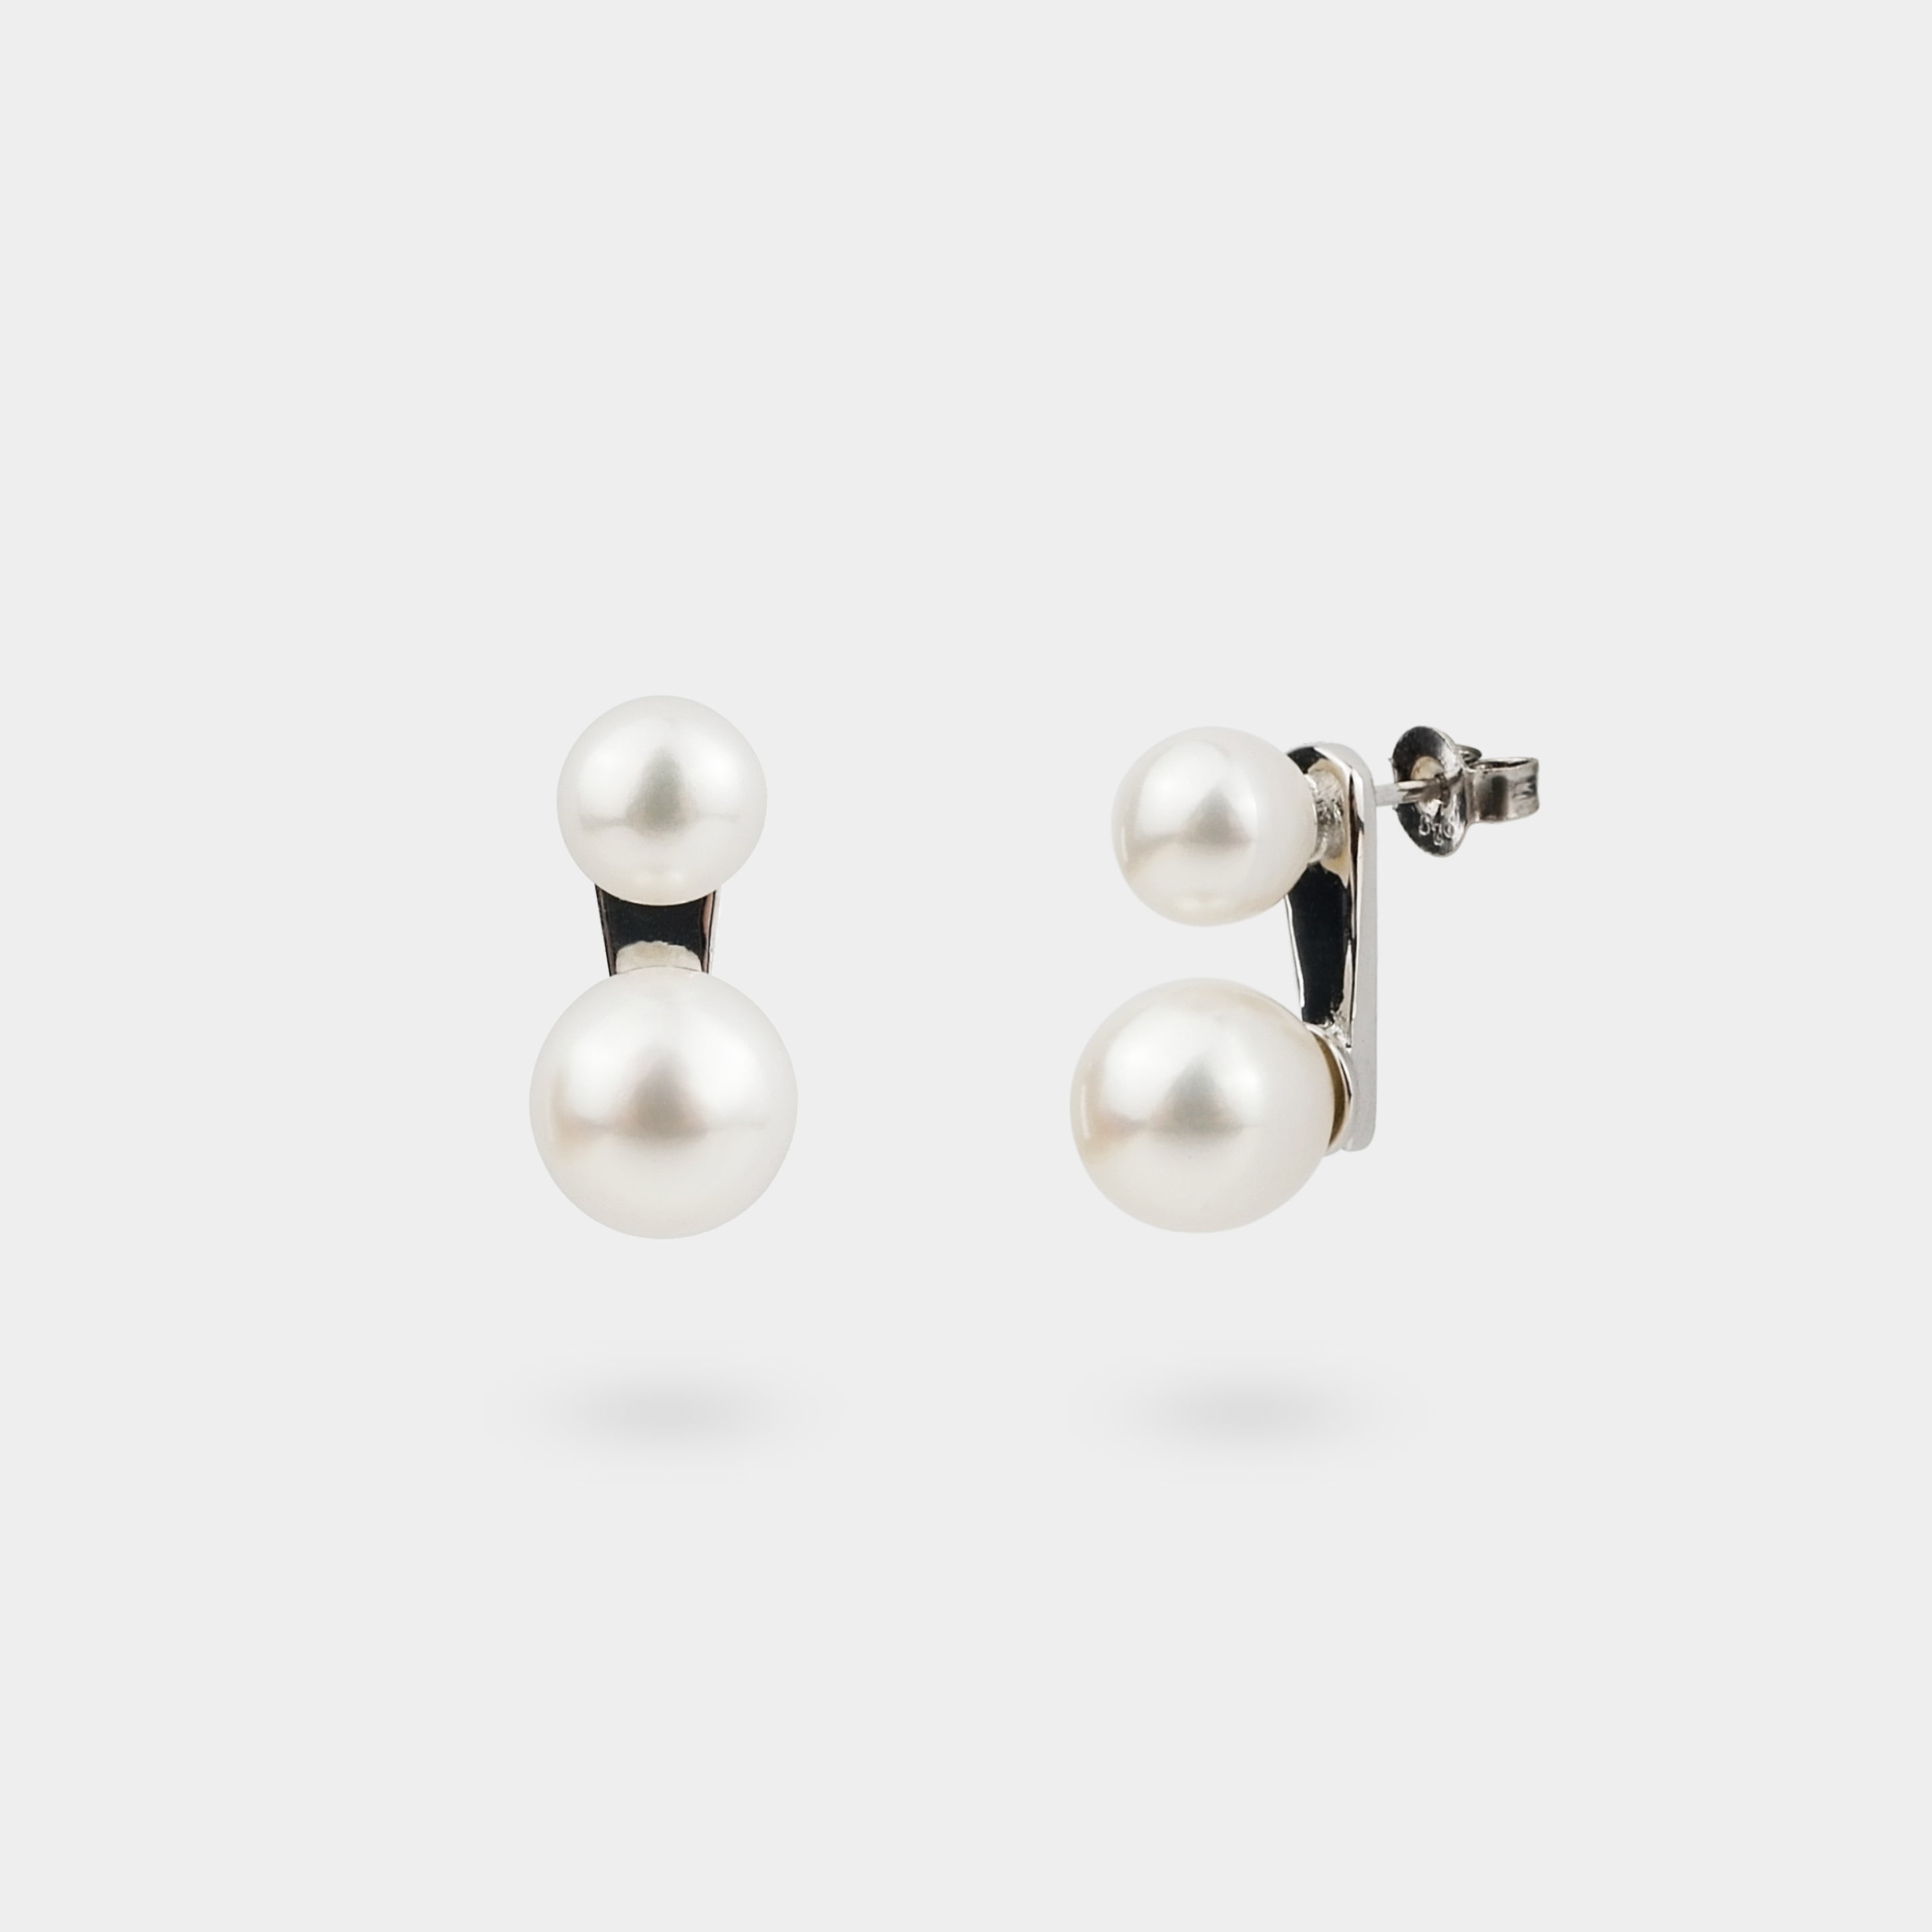 TWO-IN-A-ROW EARRINGS STUDS